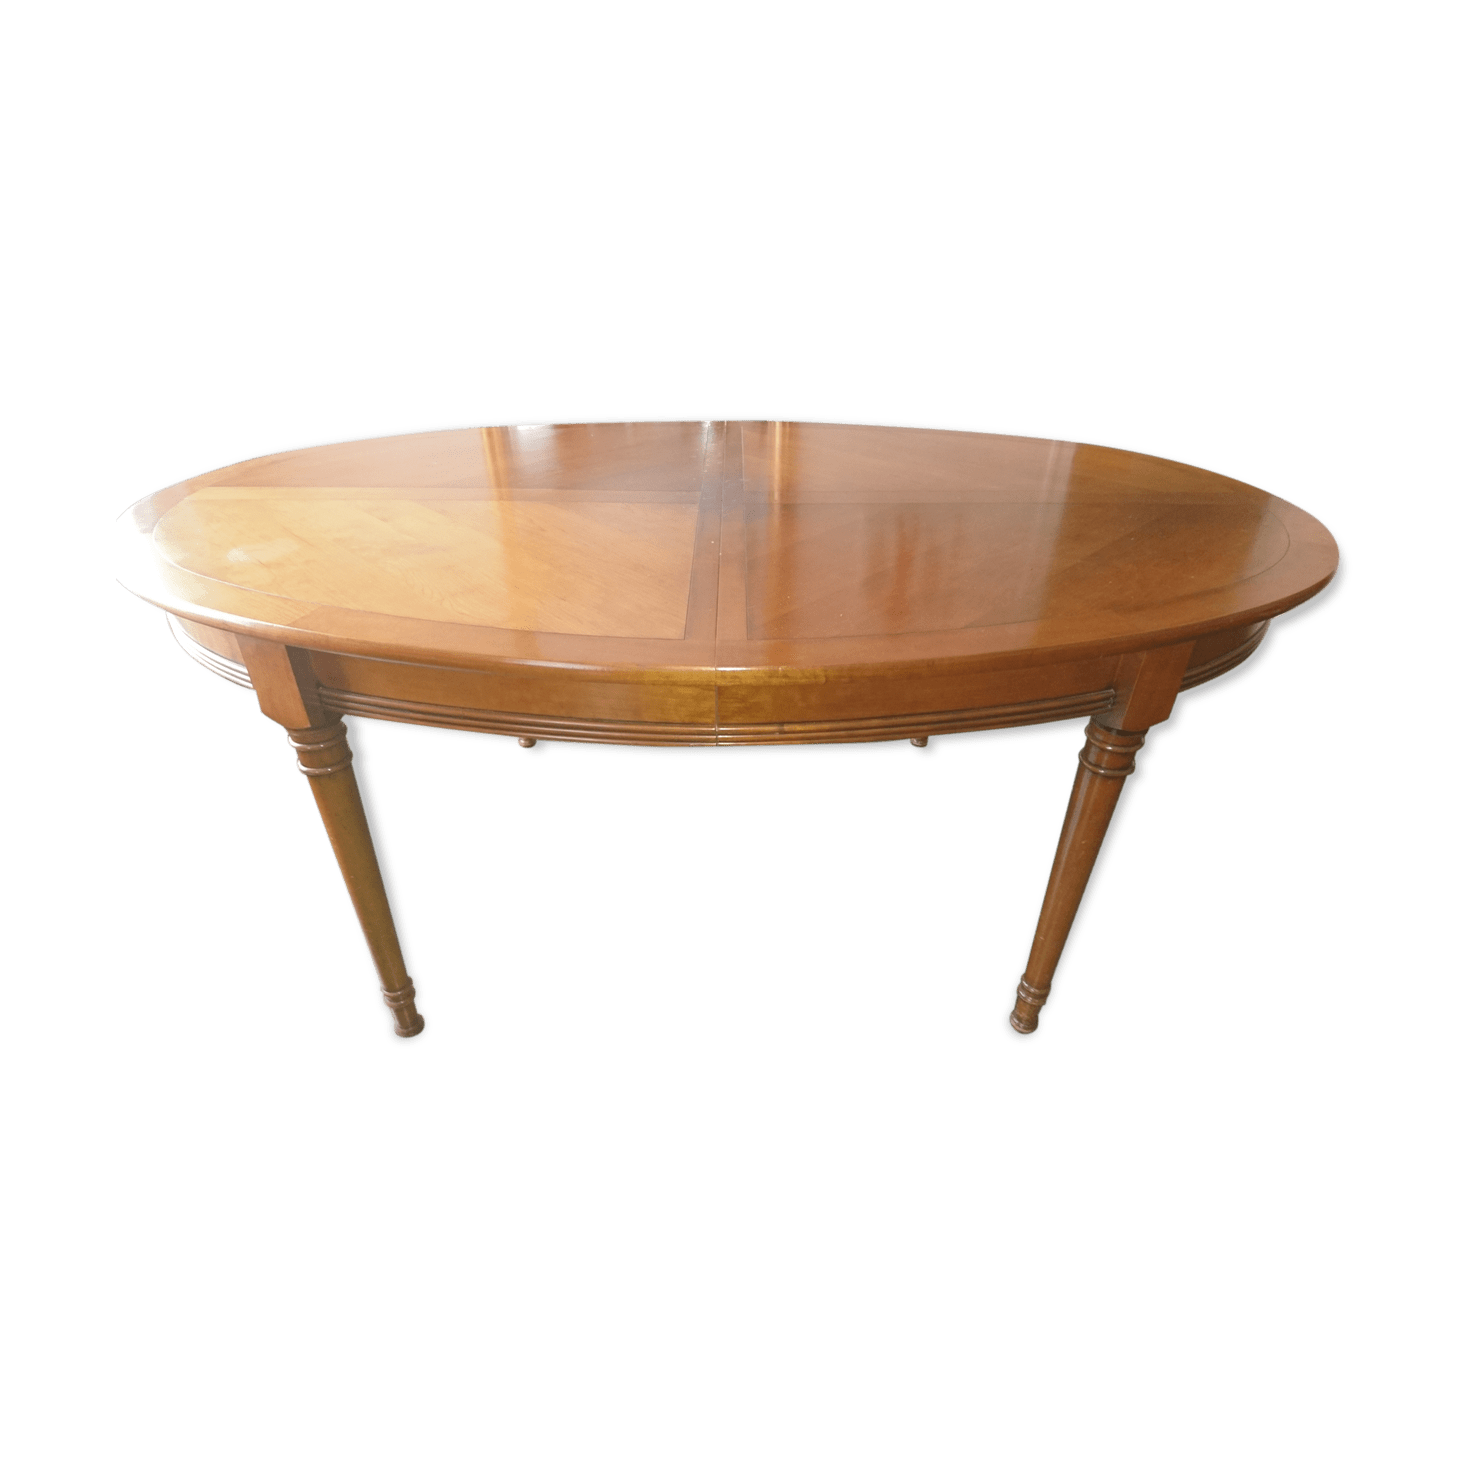 Table Ovale à Rallonge Table Ovale Rallonge Excellent Table En Bois With Table